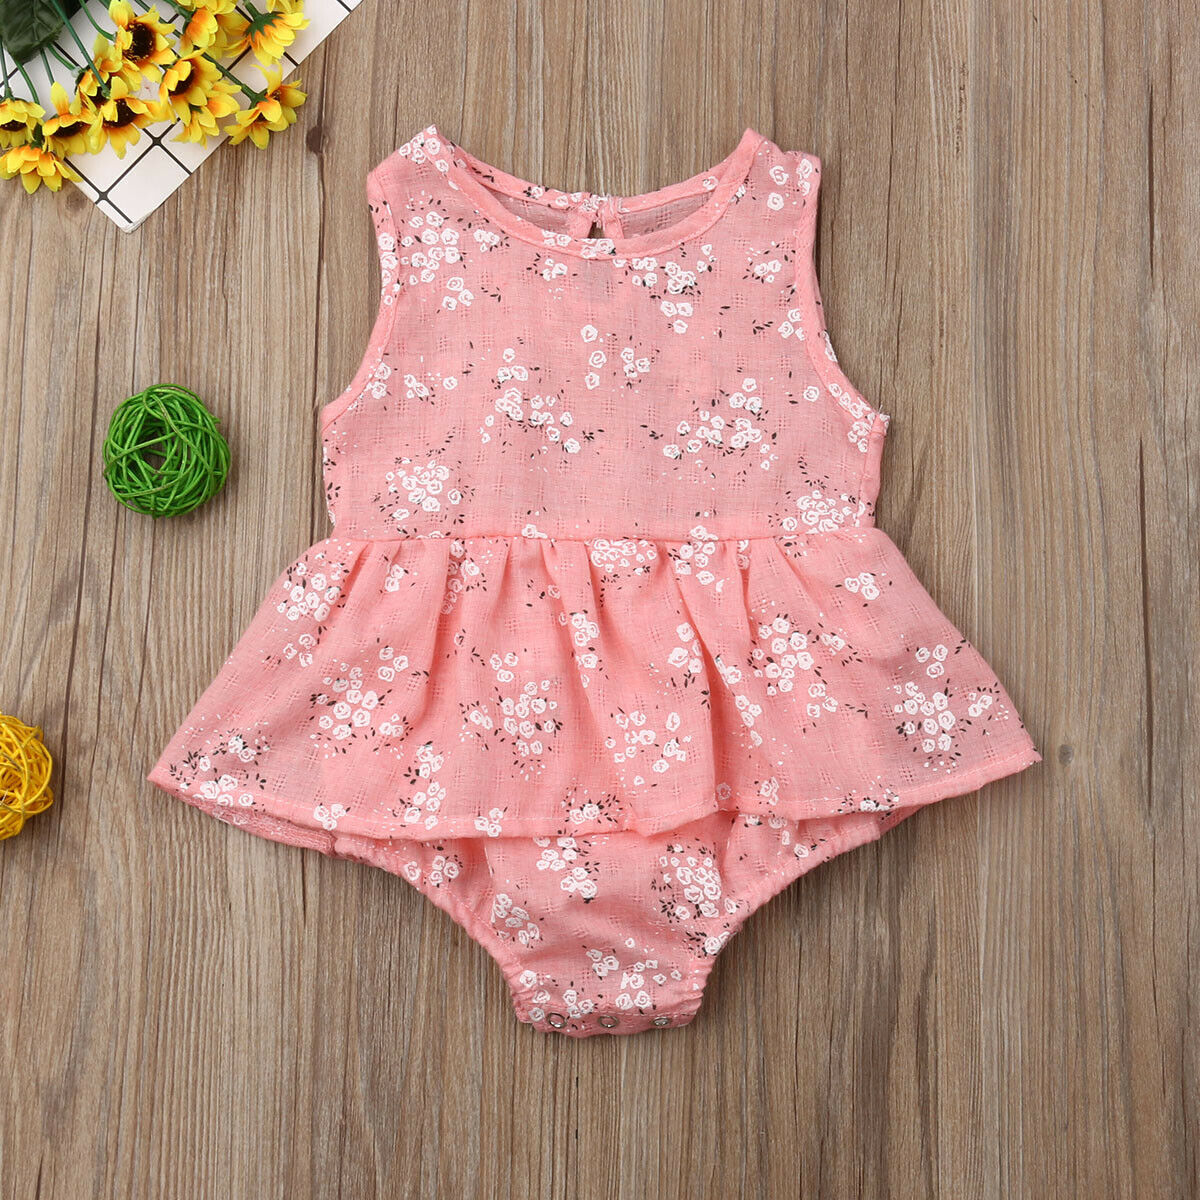 bd2889434 Newborn Toddler Baby Girl Clothes Ruffle Floral Romper Sleeveless Jumpsuit  Cotton Outfits Sunsuit Clothes ~ Super Deal June 2019